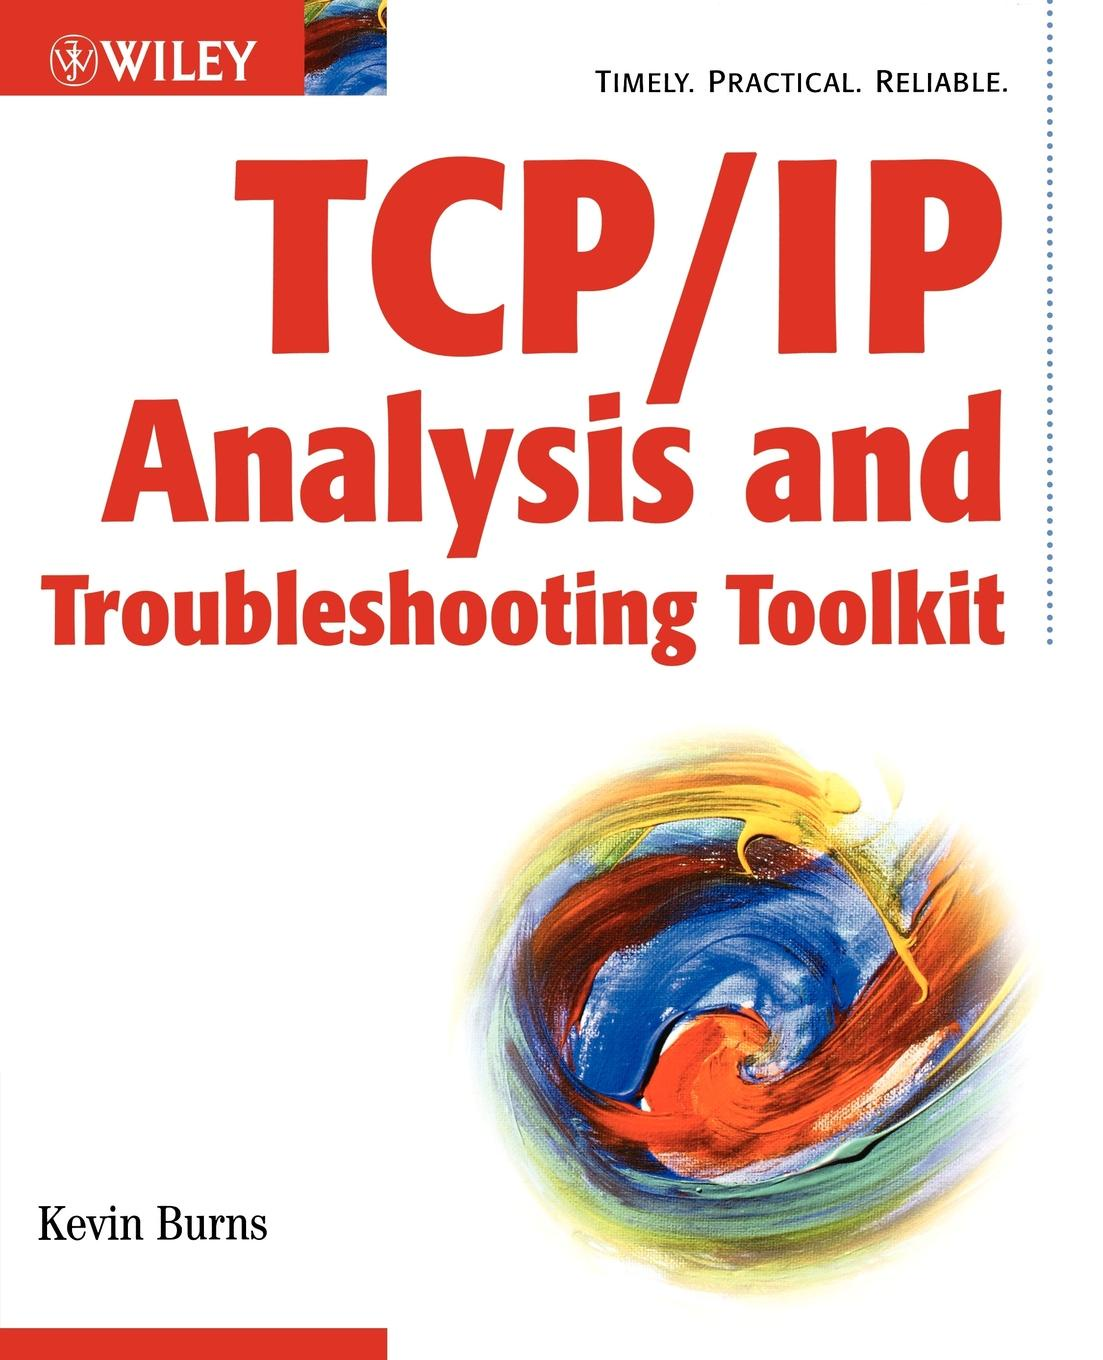 Kevin Burns TCPIP Analysis and Troubleshooting Toolkit